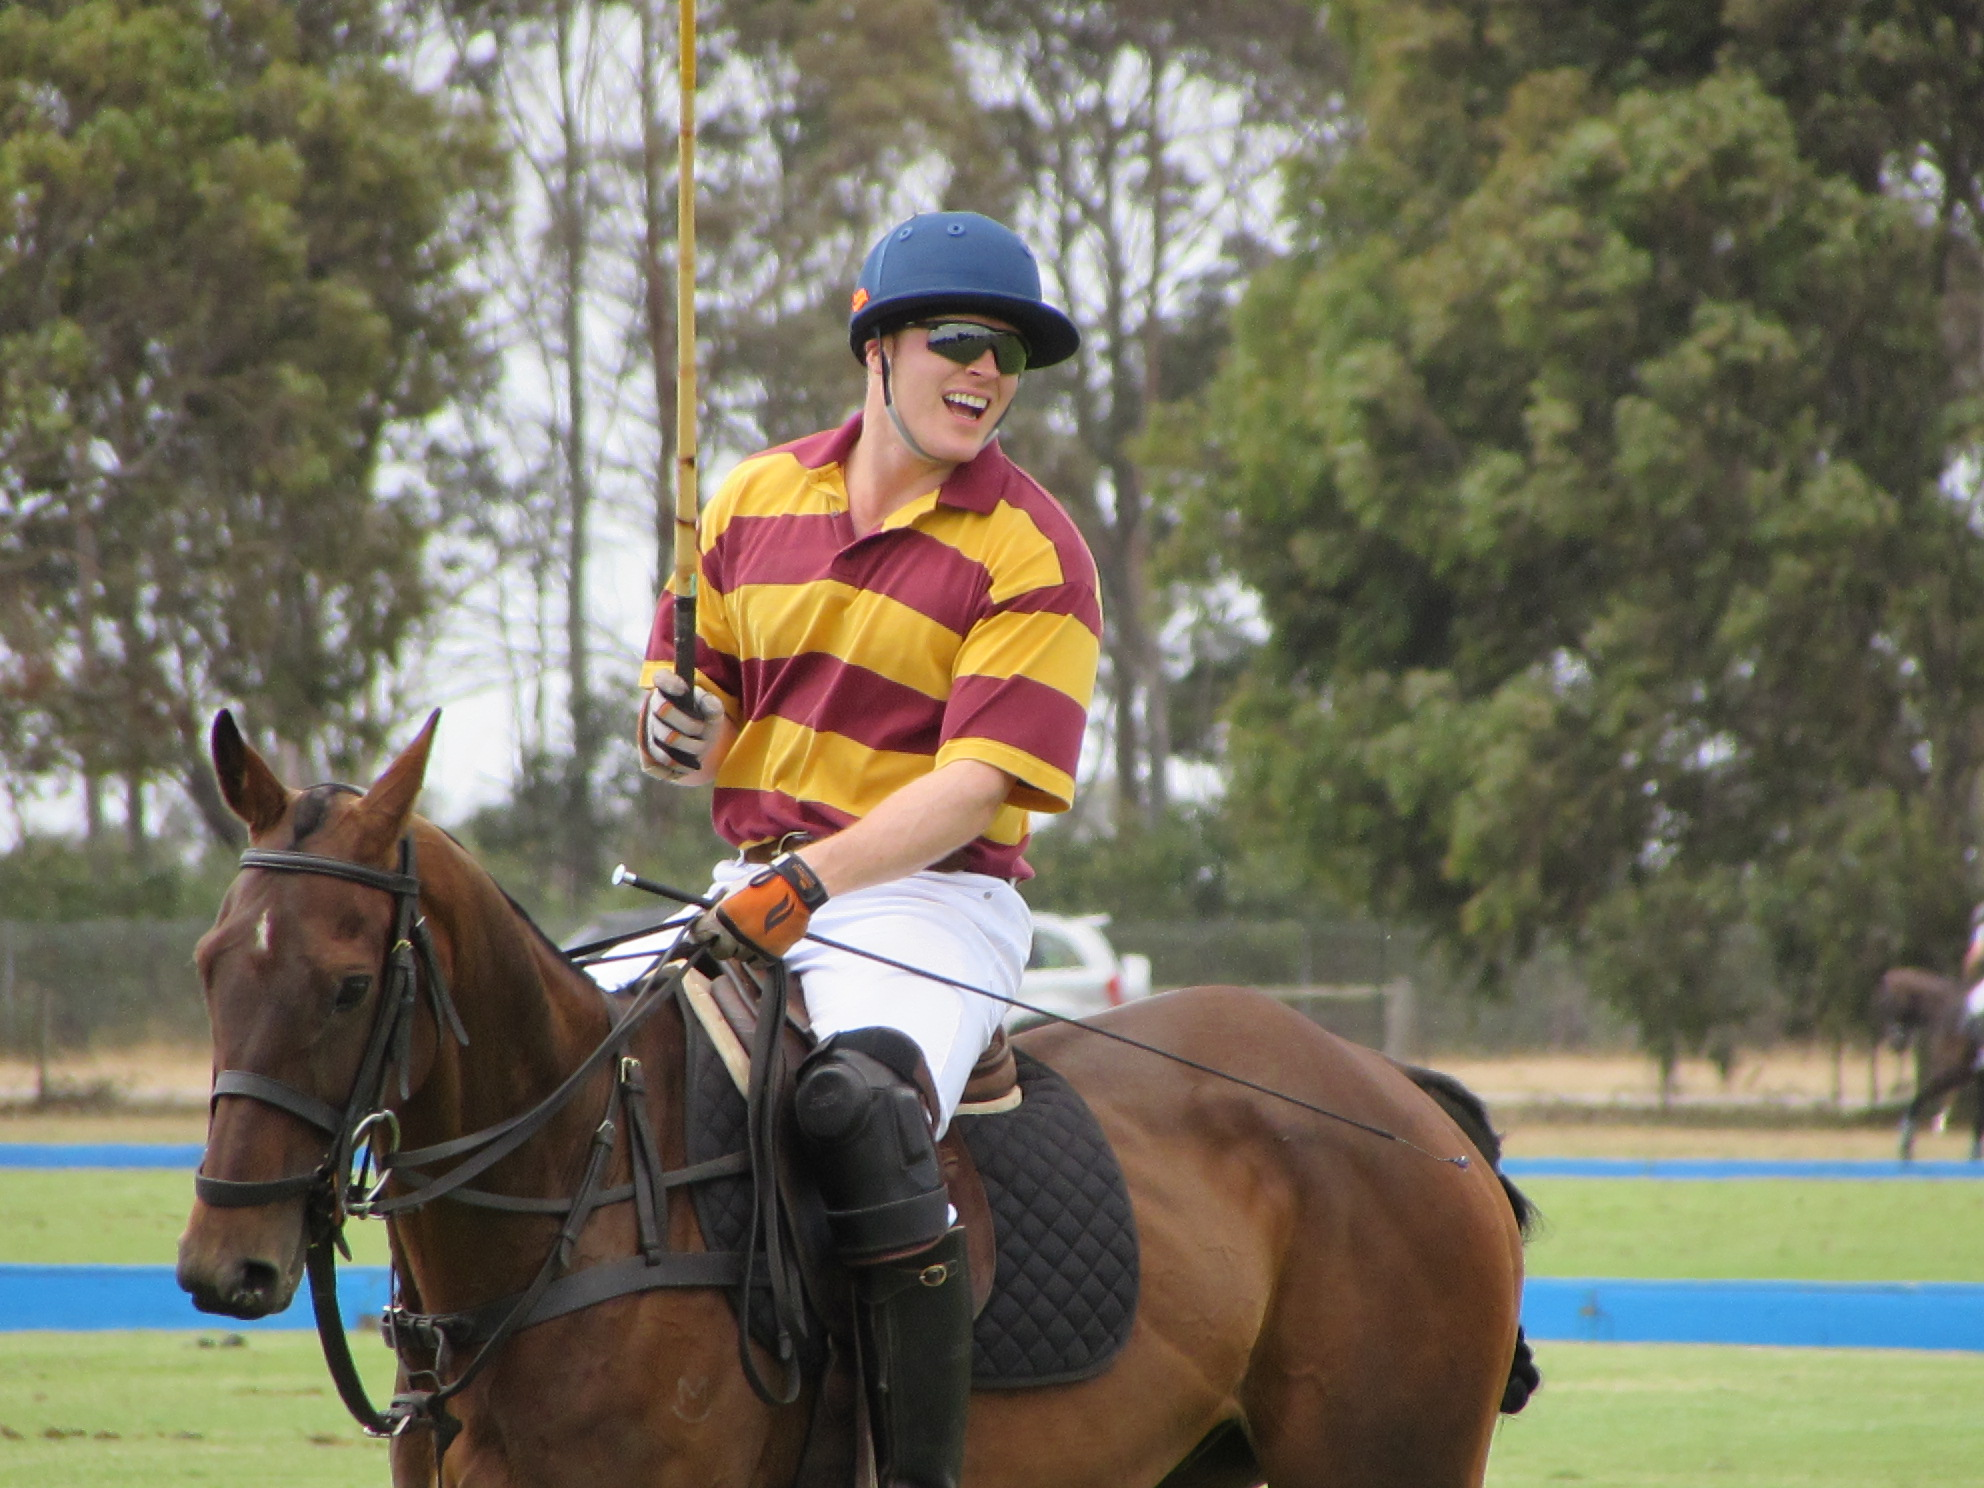 Hexham Polo Club - JSM